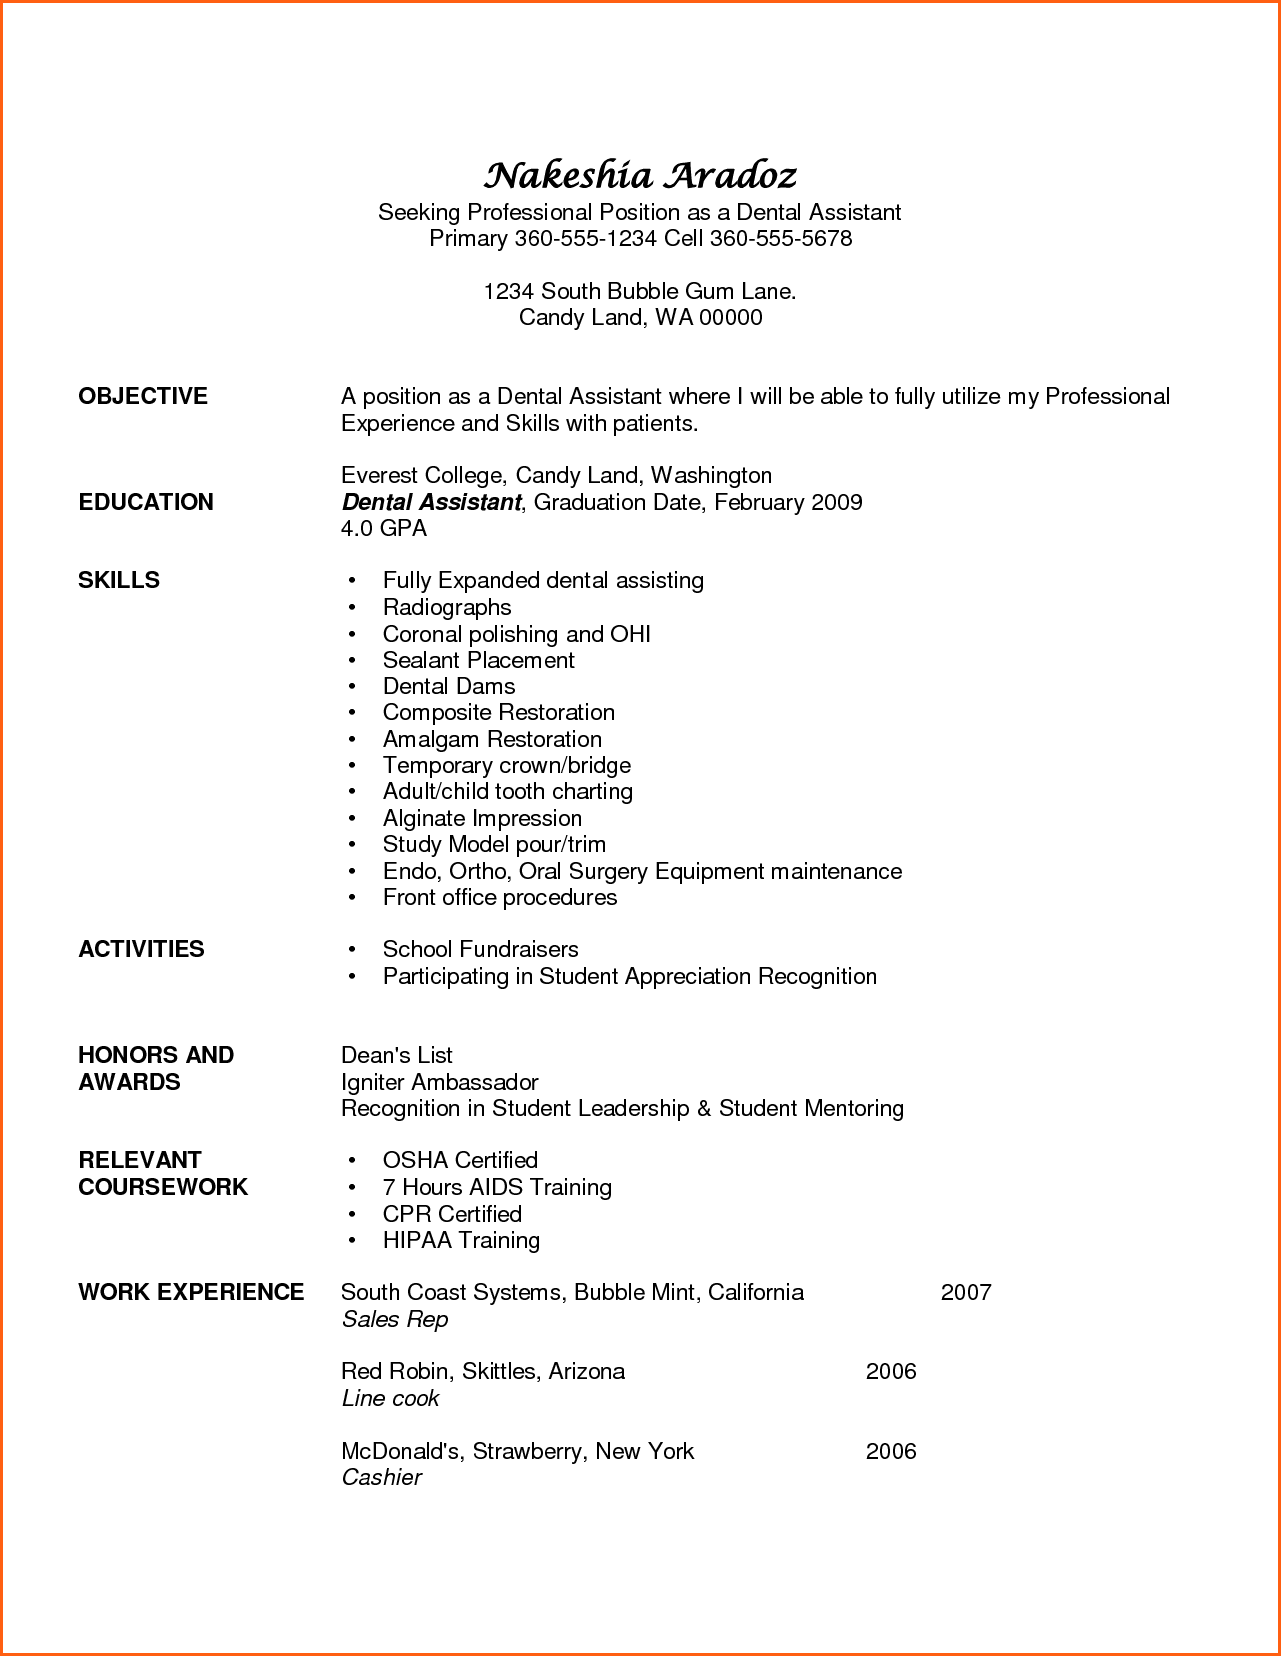 Resume Examples Skills Cool Dental Assistant Resume Examples Event Planning Template Design Ideas